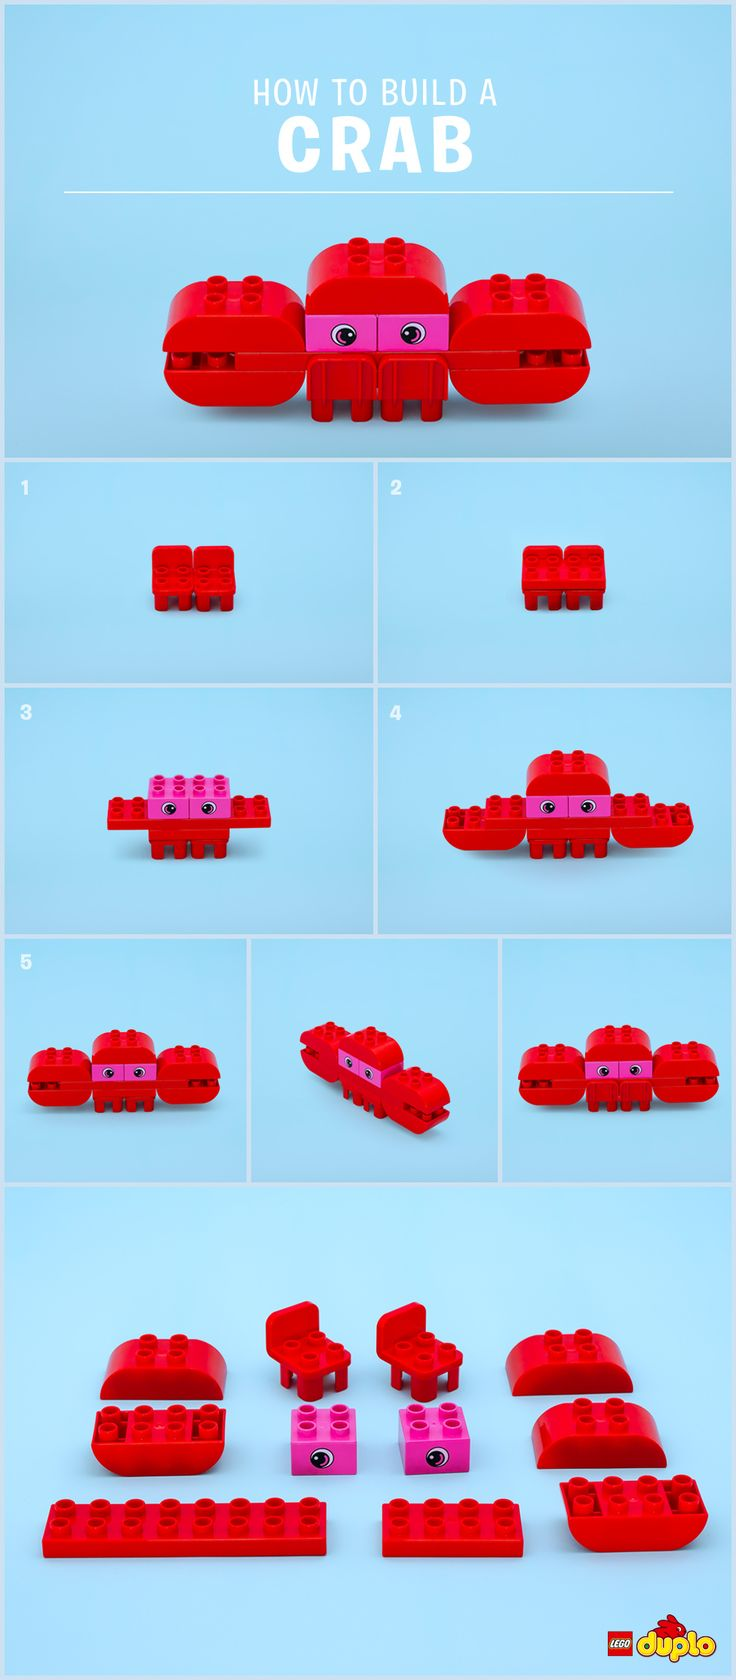 All sorts of exciting creatures live in the ocean! Have fun building a bright crab with your toddler, using our easy-to-follow guide! http://www.lego.com/da-dk/family/articles/how-to-build-a-crab-316d27d03a0247d9817436a4f2ad19d1